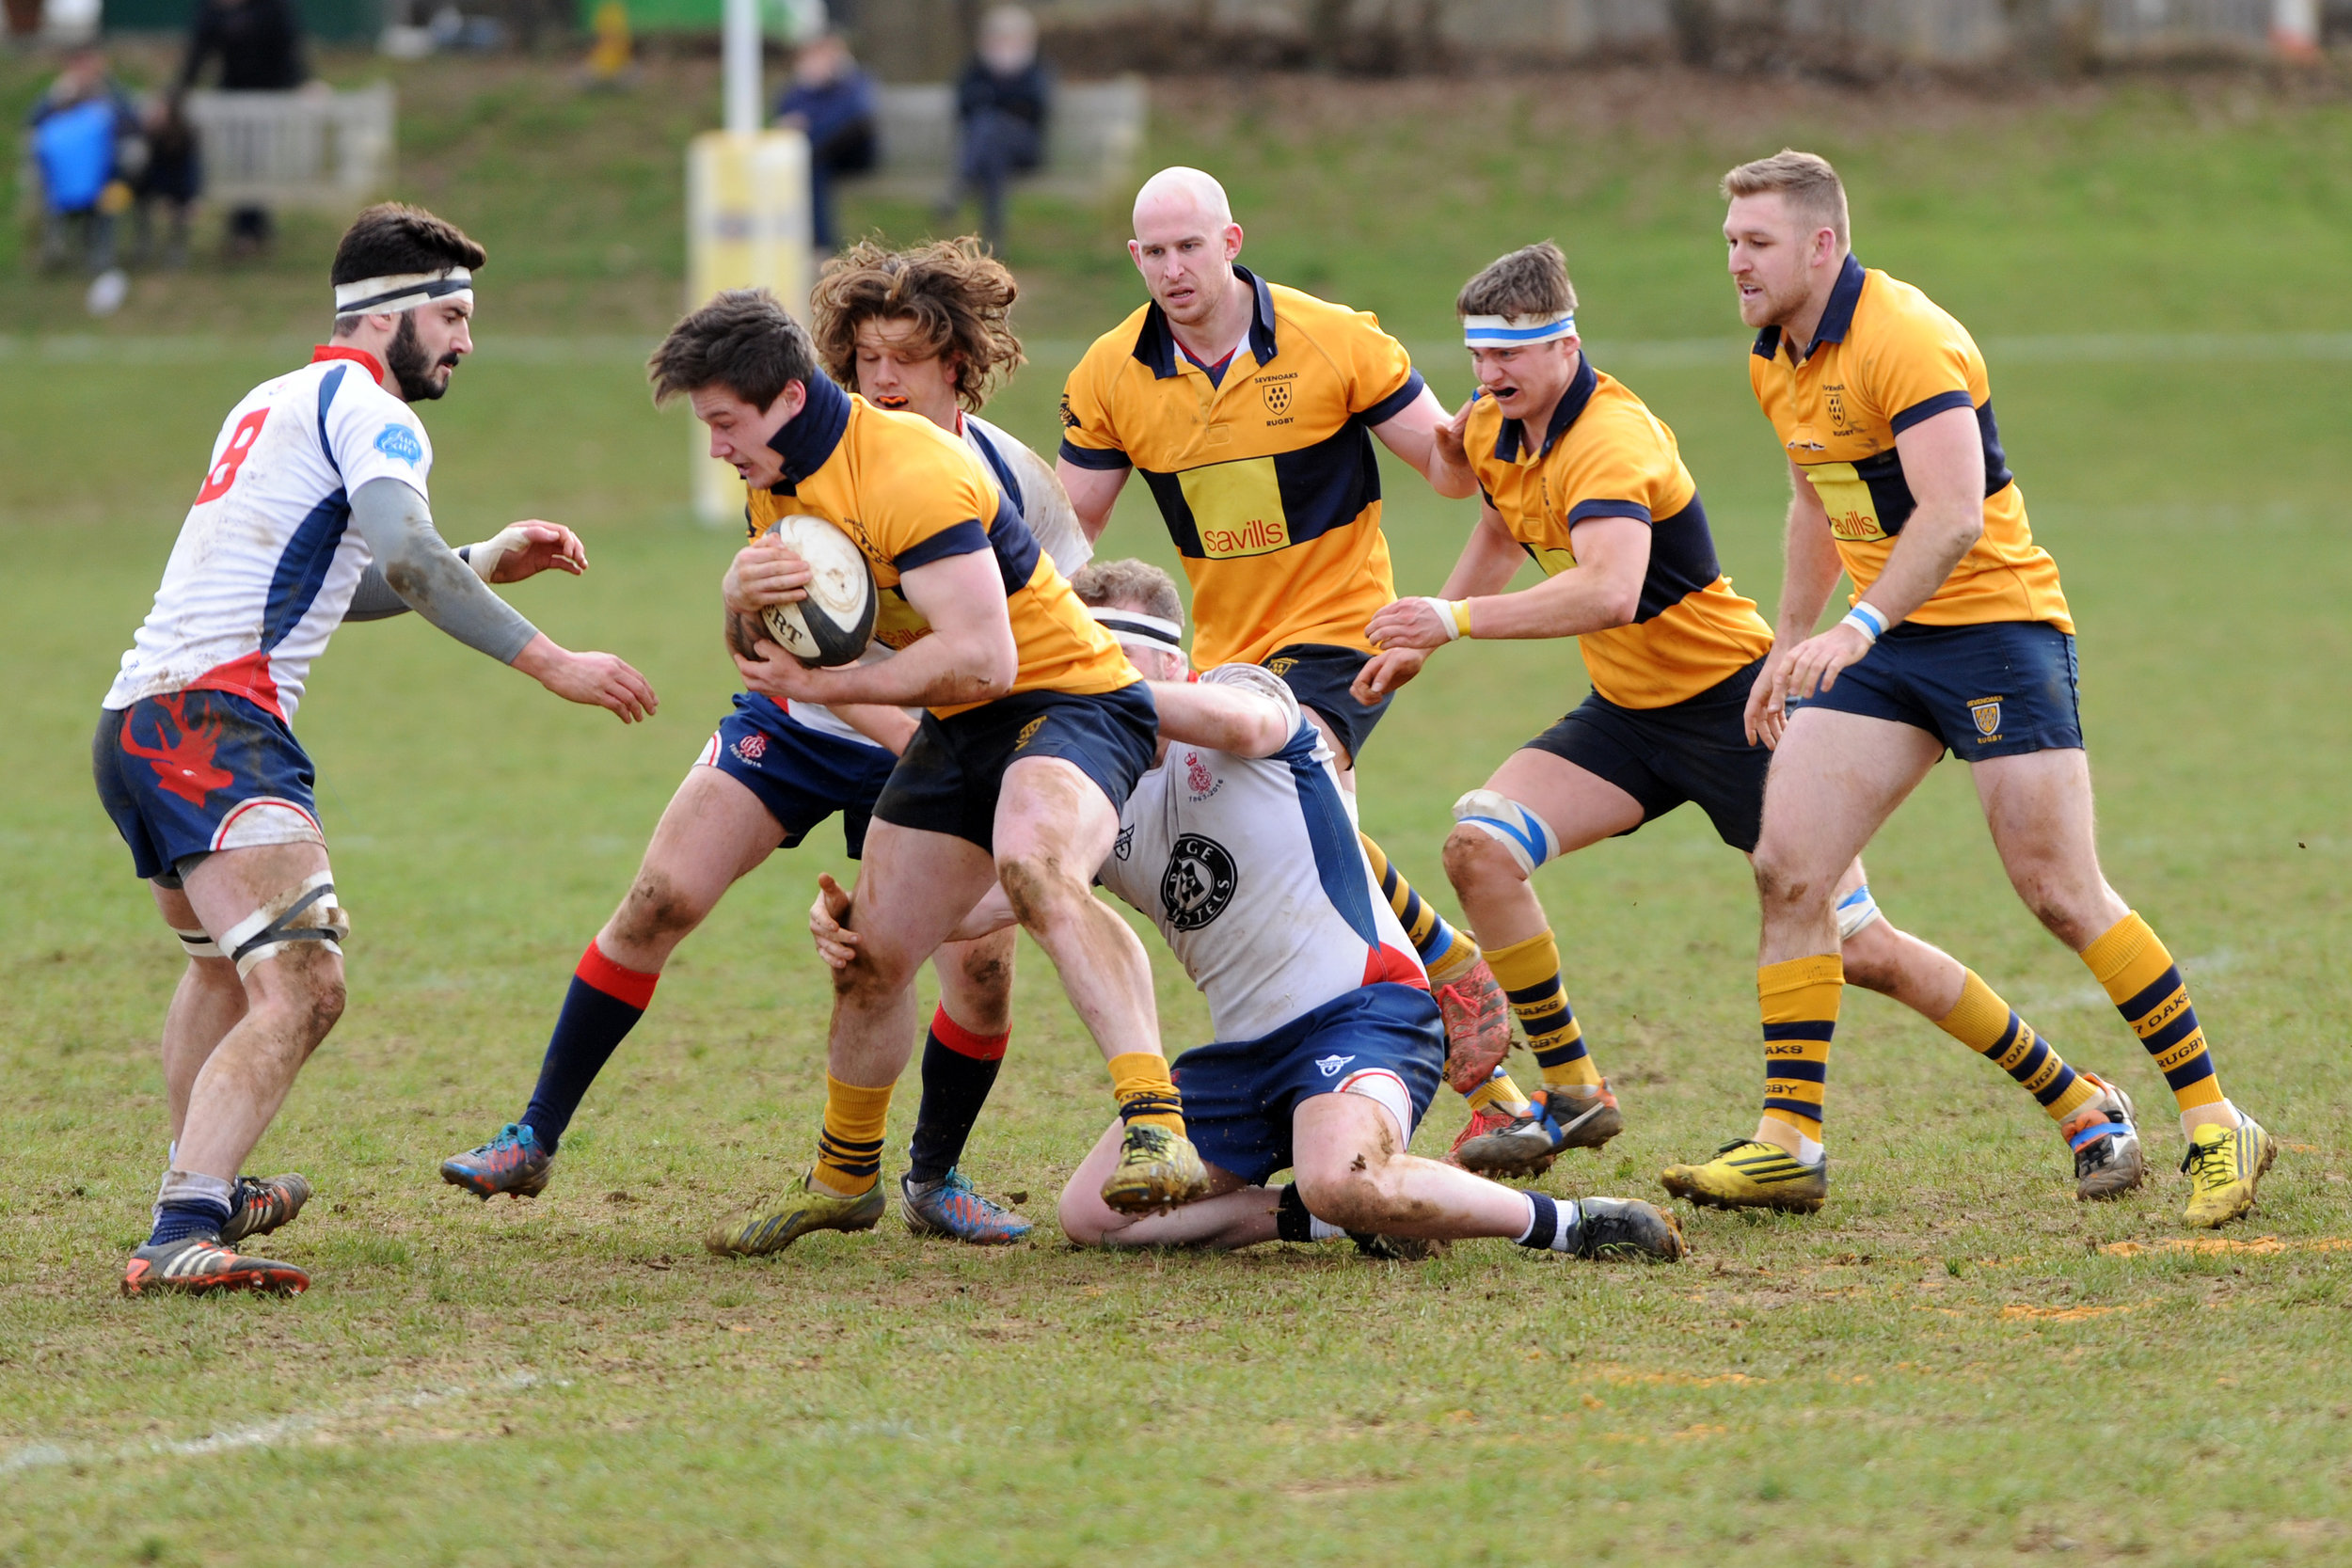 OAKS VERSUS CS RUGBY 1863 4 MARCH 2017 Photo credits: Dave Purday